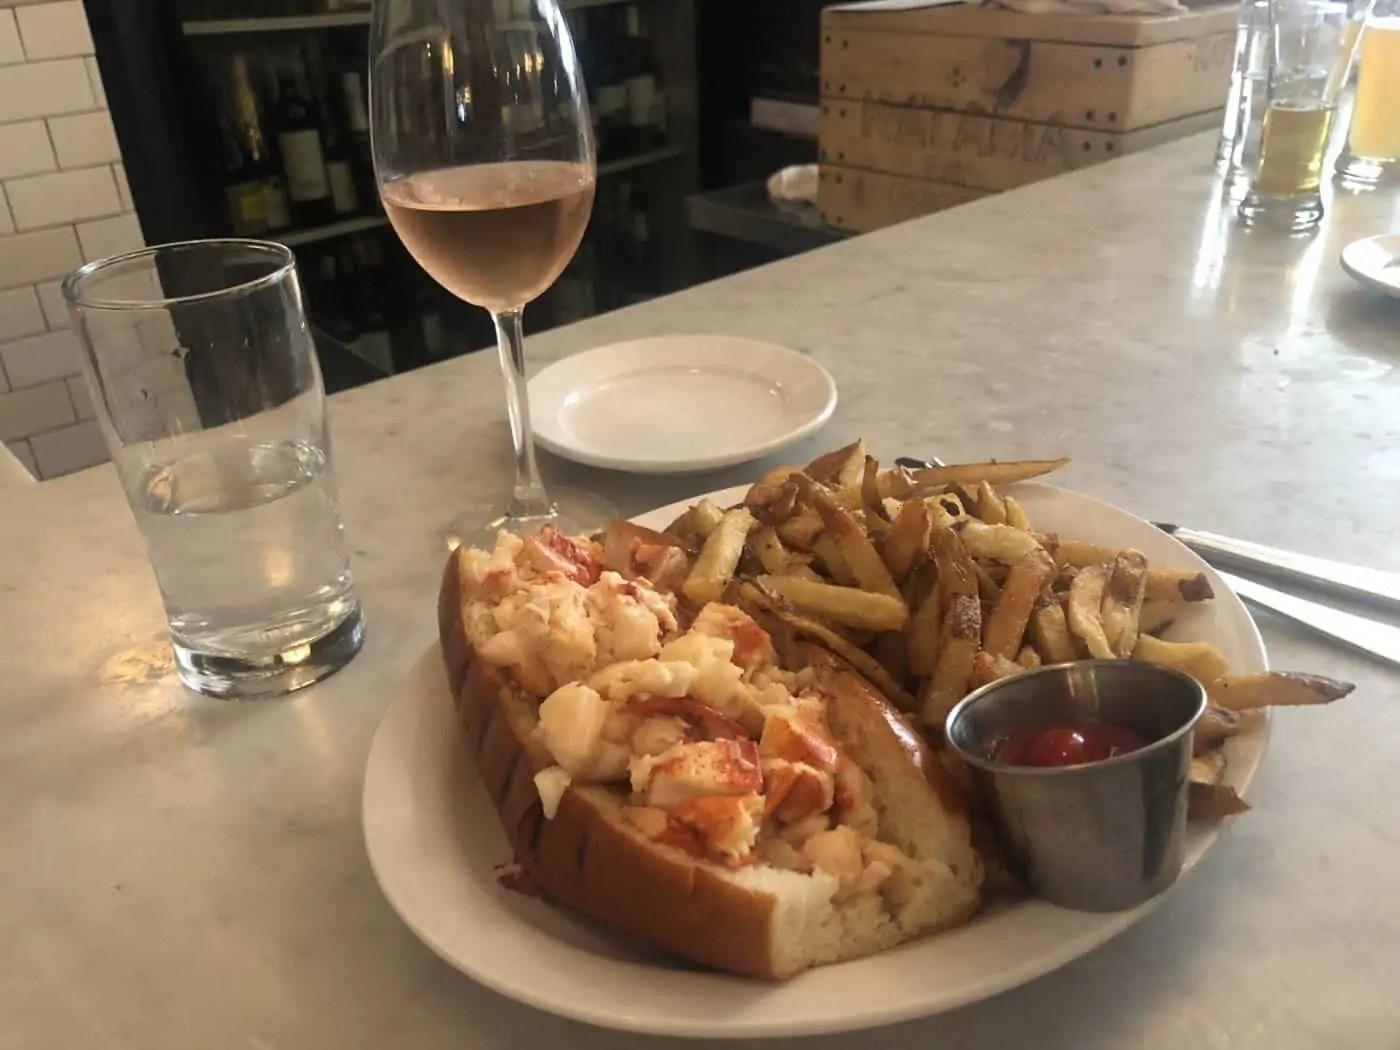 Get the Lobster Roll from Neptunes Oyster during your 24 hours in Boston